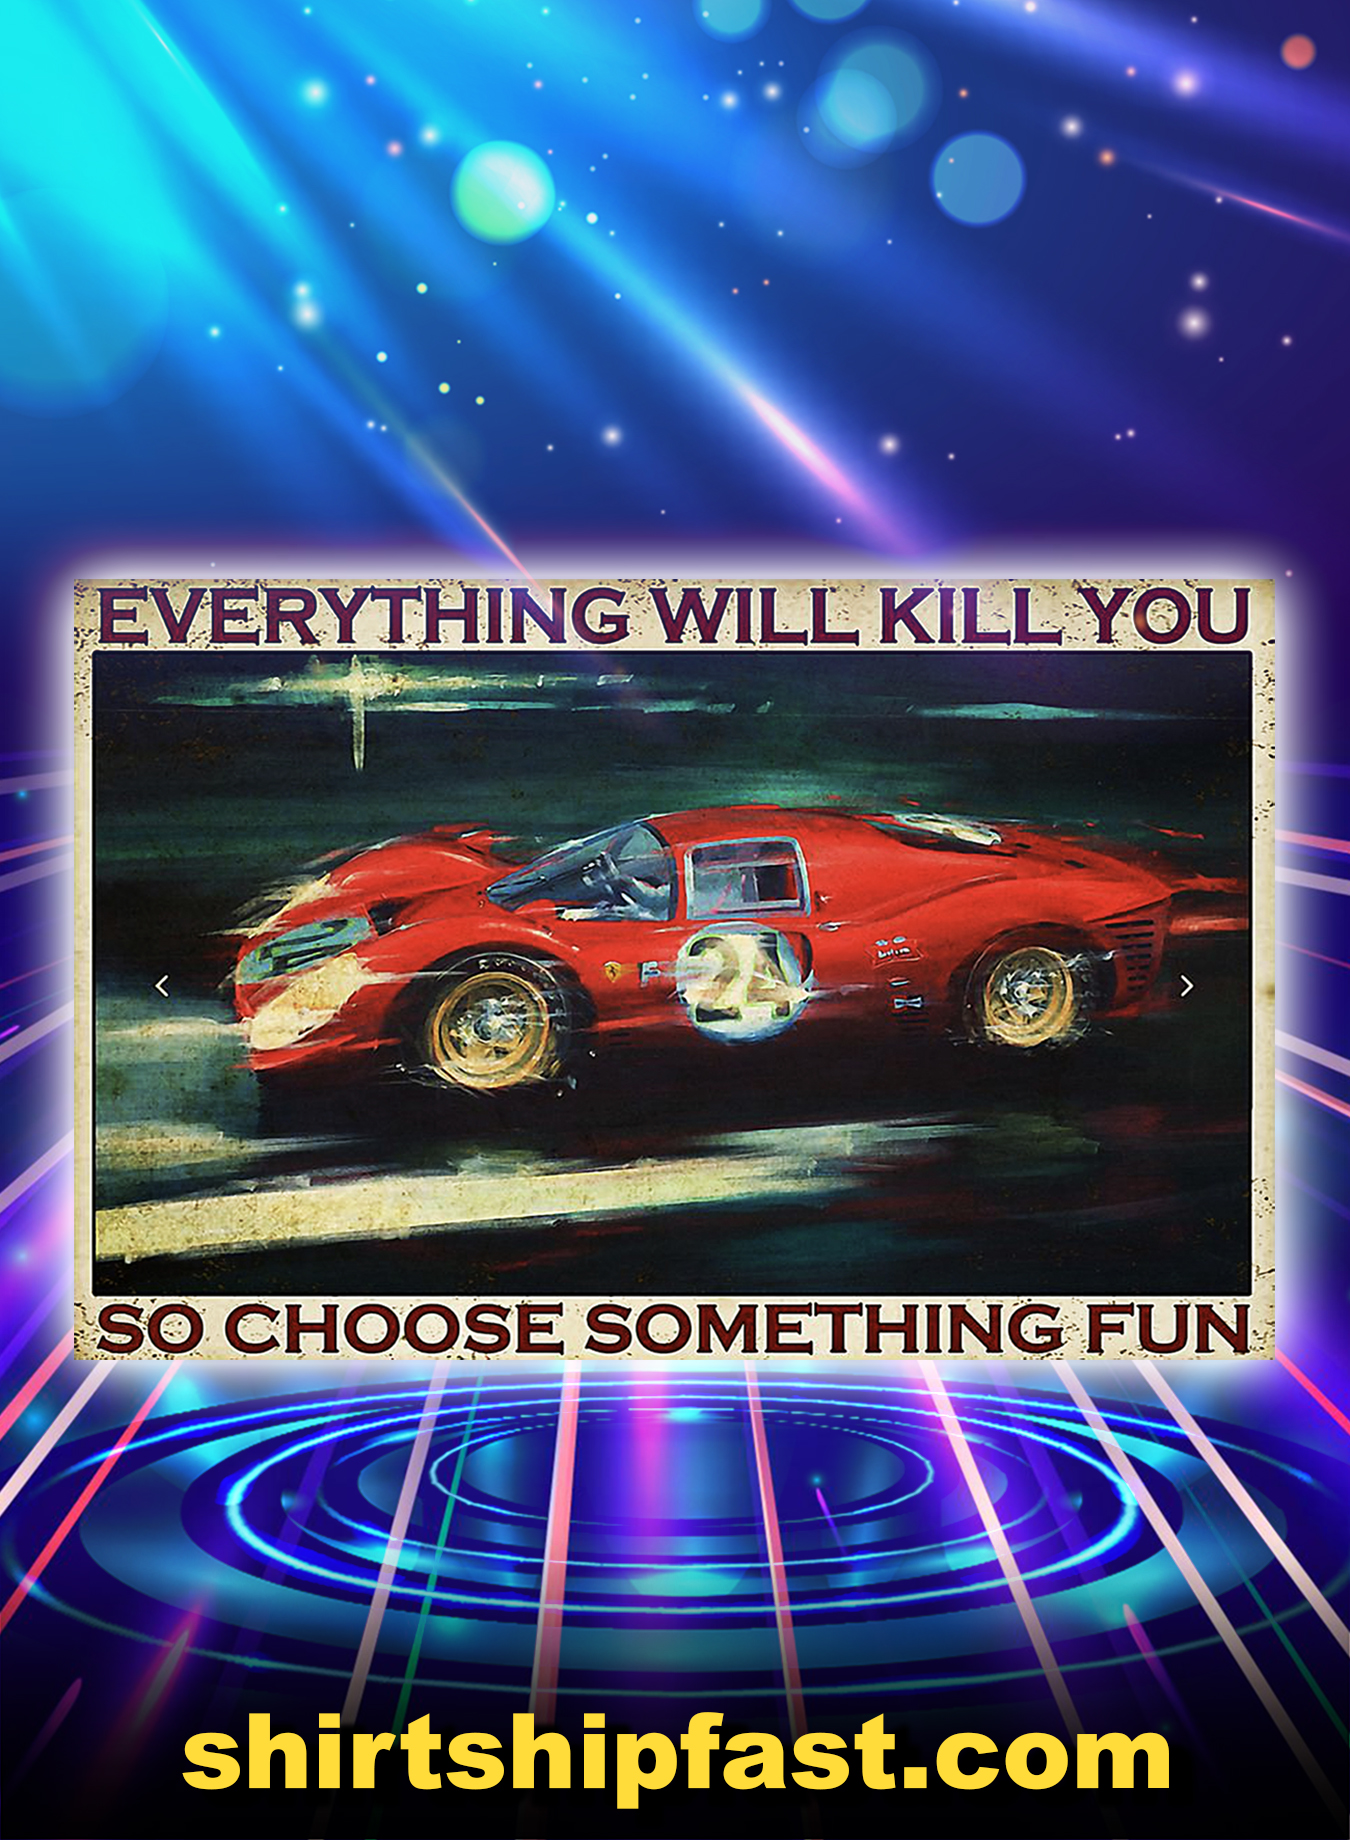 Sport car racing everything will kill you so choose something fun poster - A3